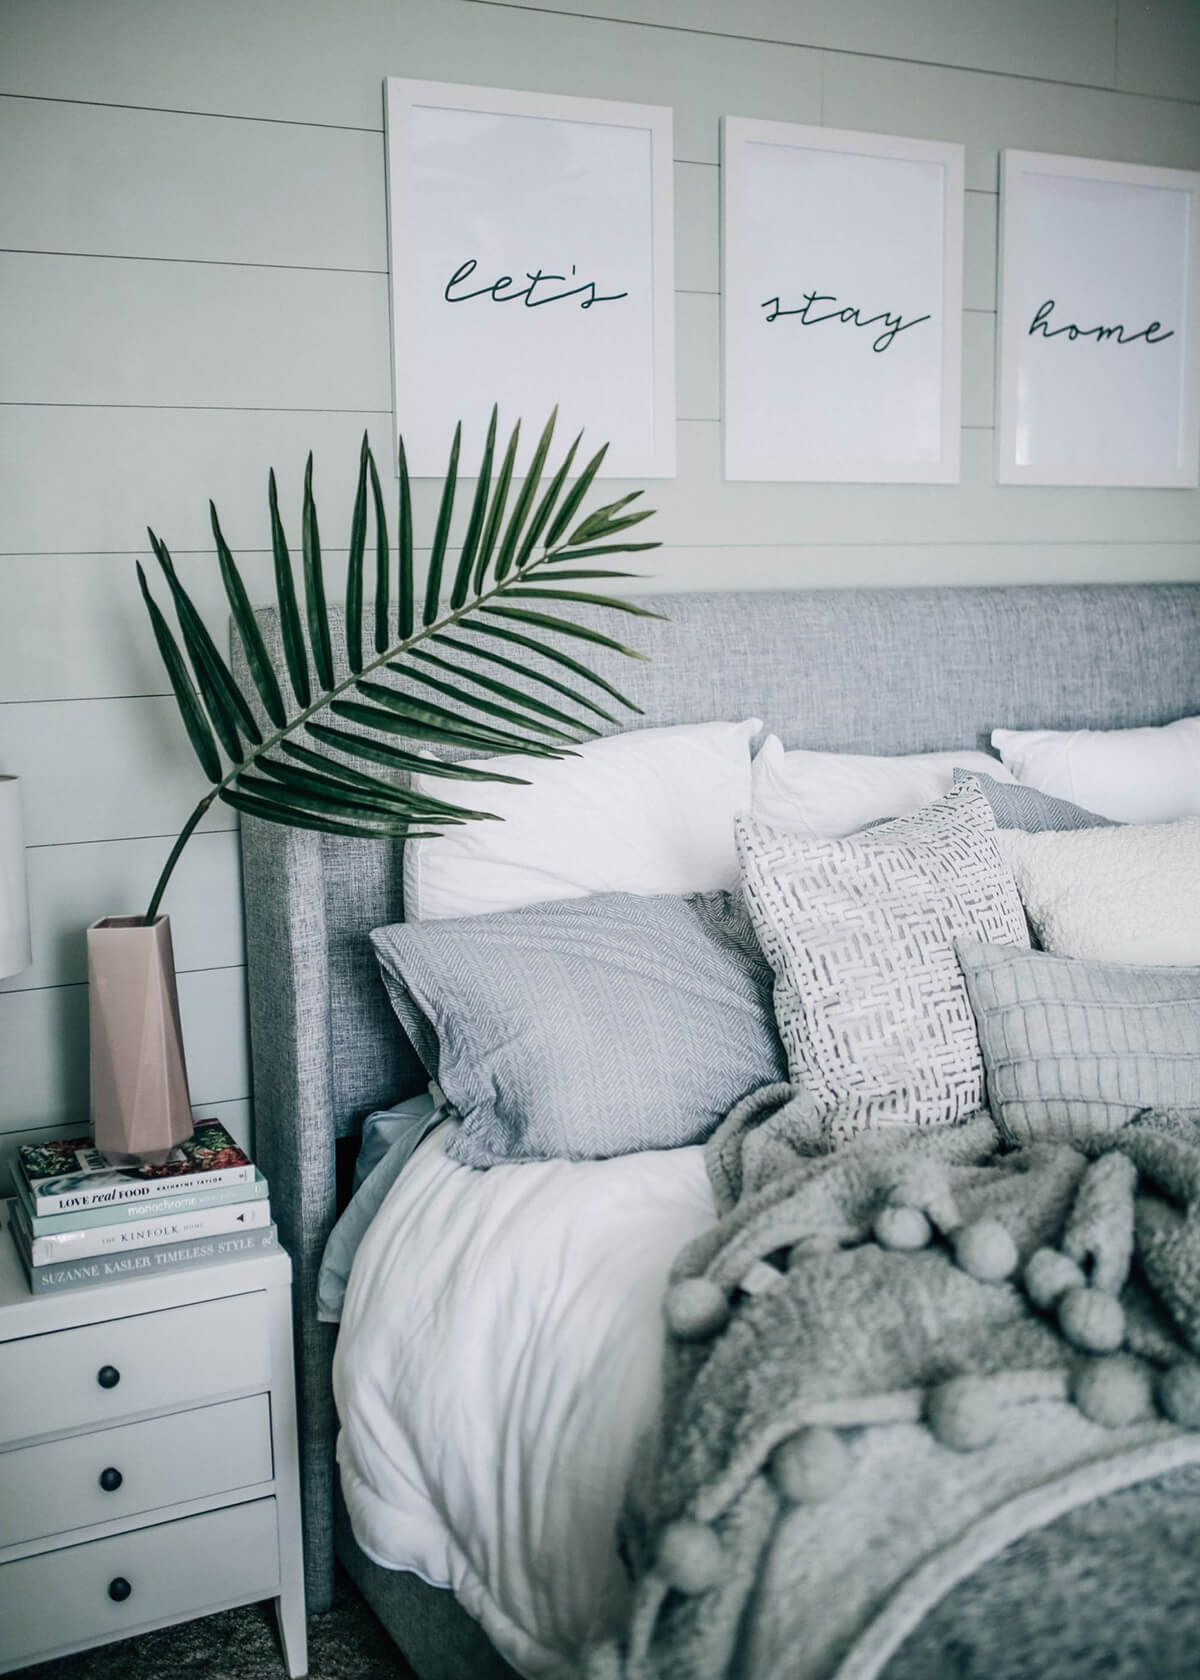 25 Cozy Bedroom Decor Ideas That Add Style Flair To Your Home Rina Watt Blogger Home Decor Diy And Recipes